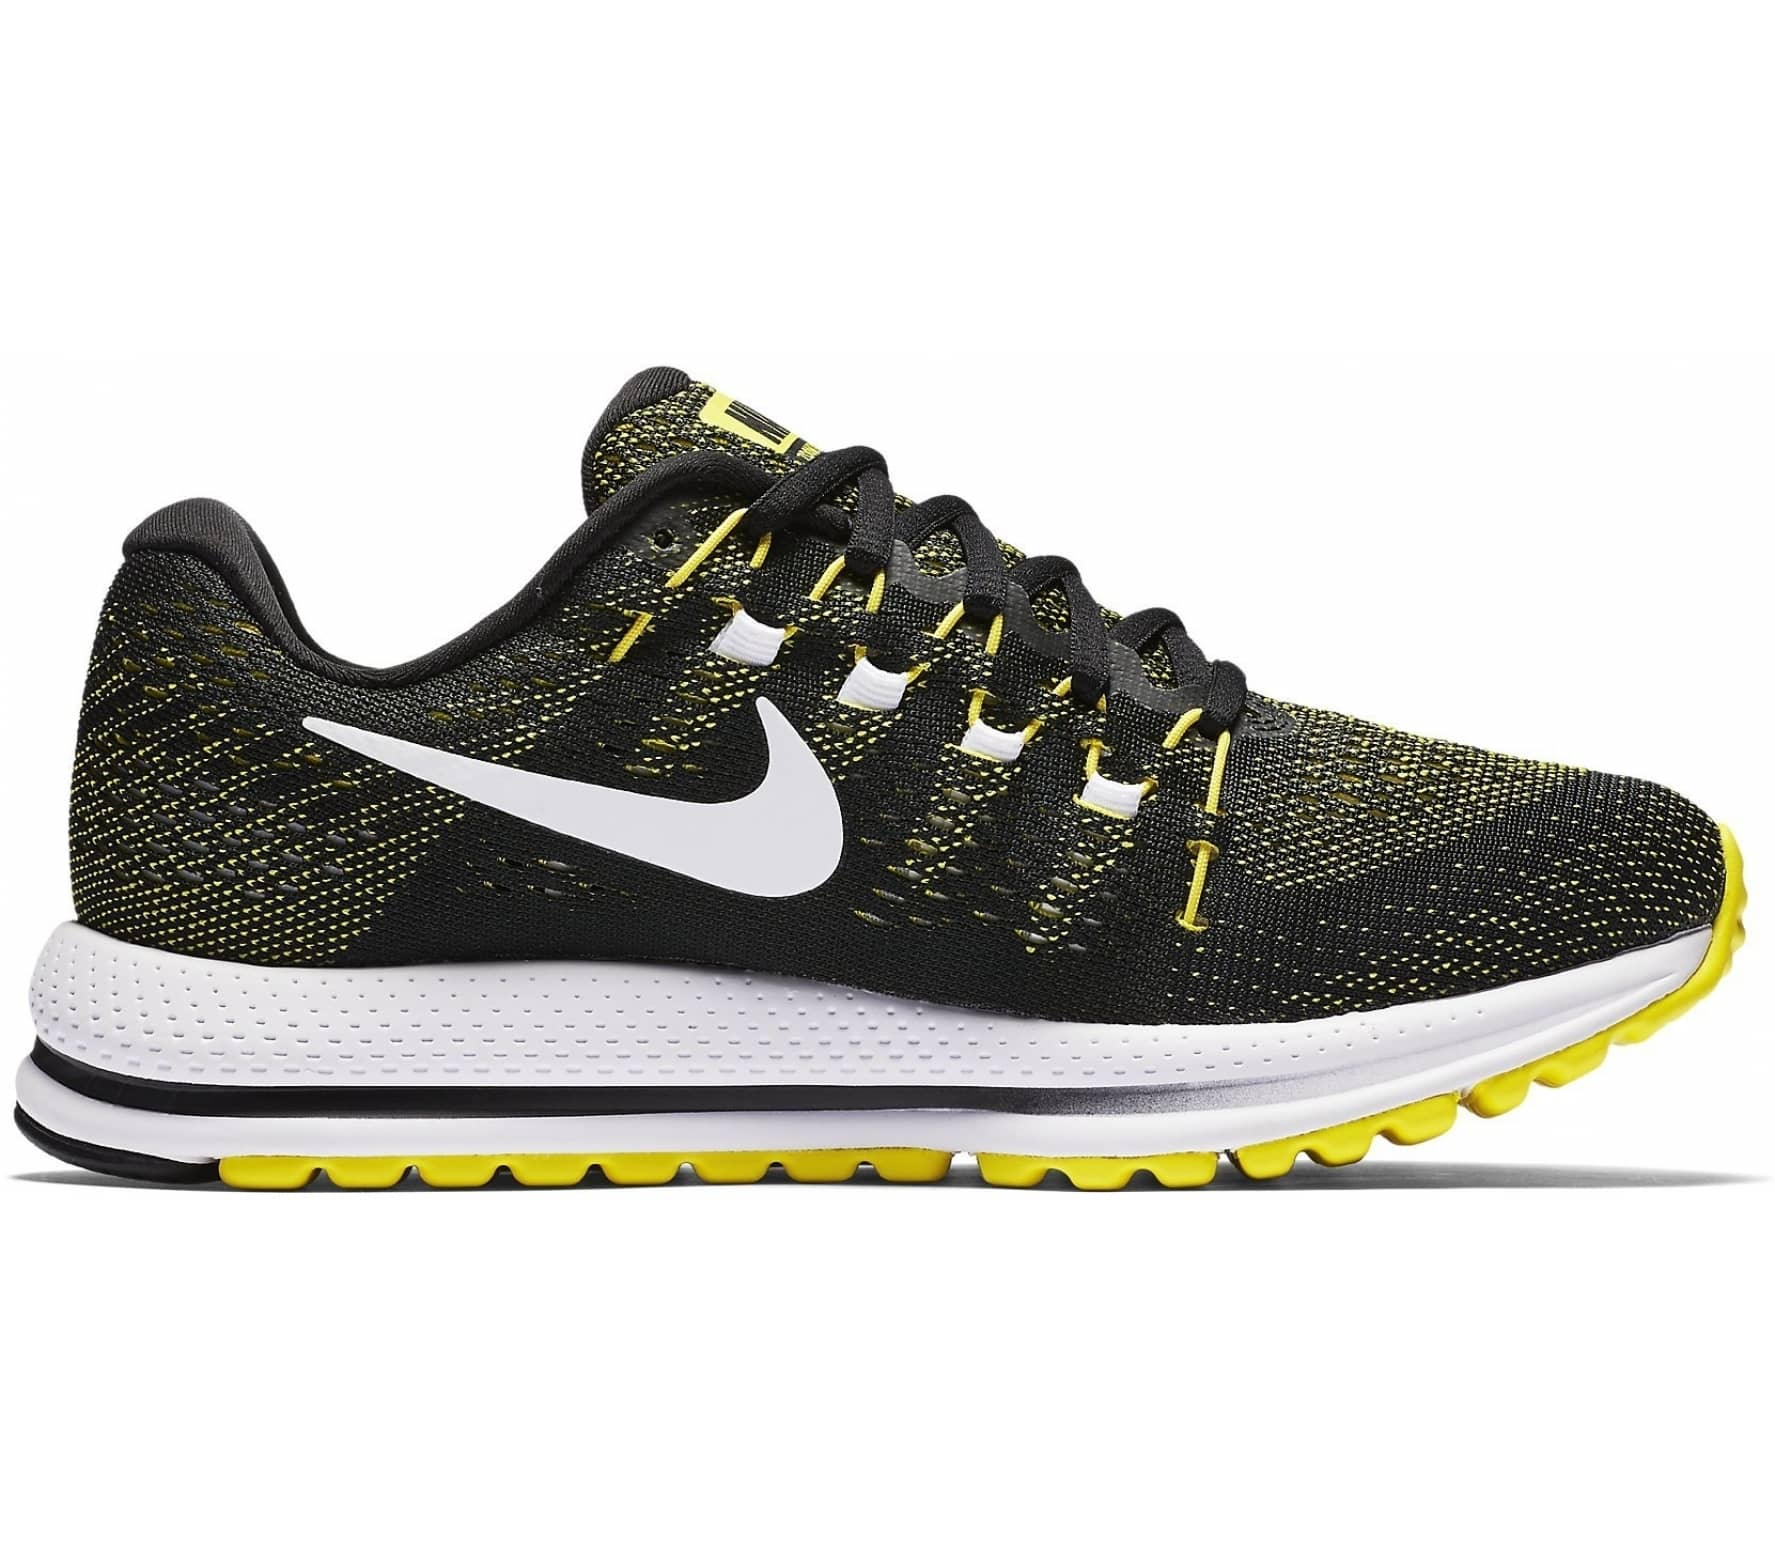 new arrival 350e2 cf628 ... discount code for nike air zoom vomero 12 bstn womens running shoes  black yellow 41cd9 5174e